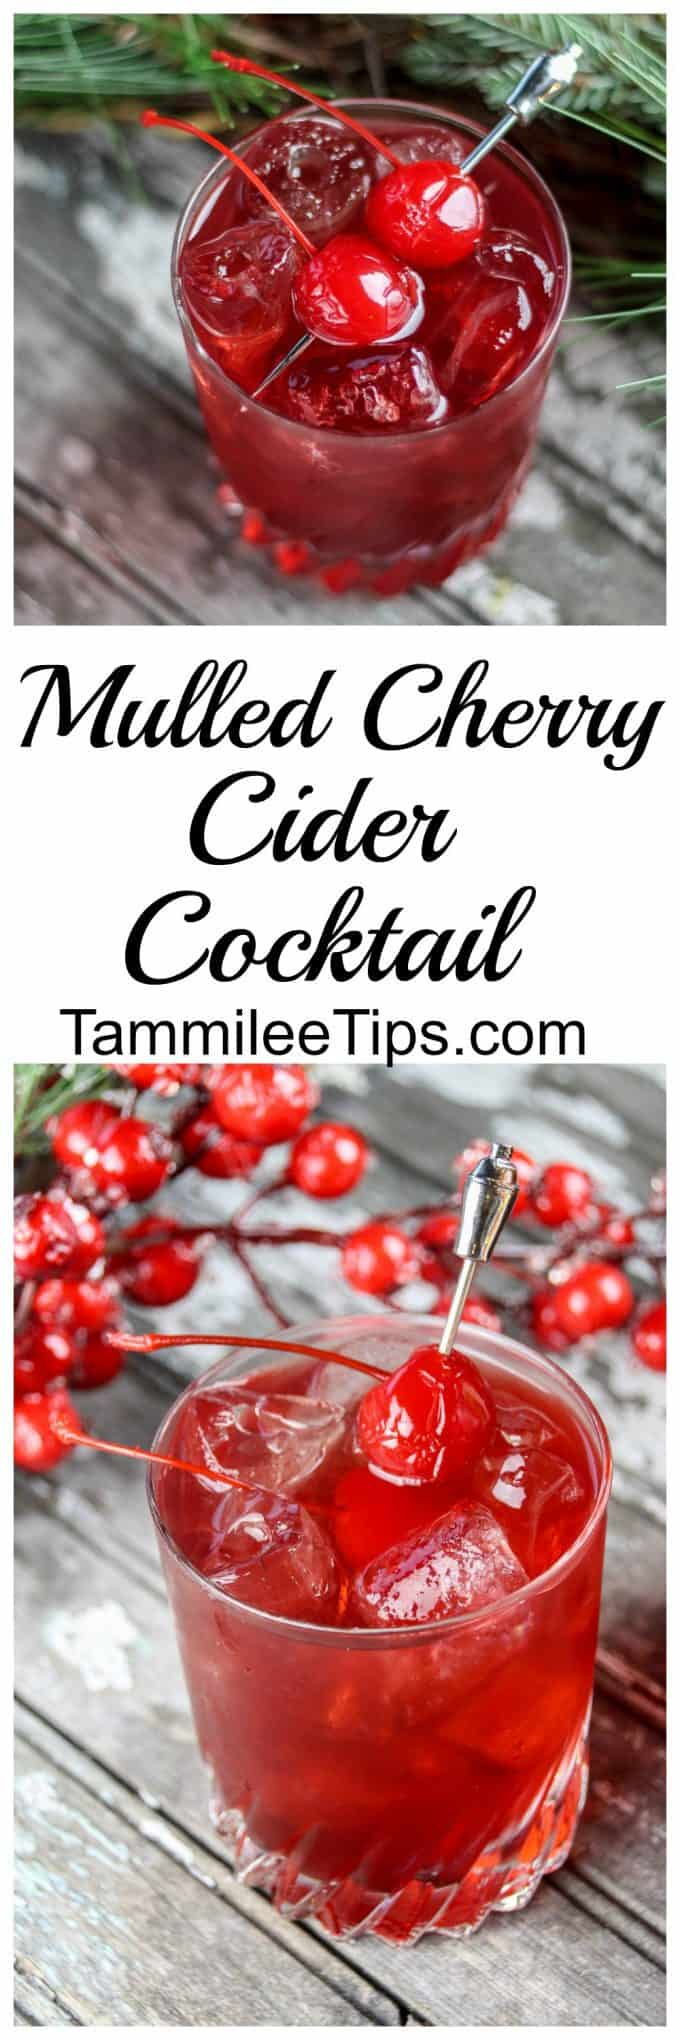 Mulled Cherry Cider Cocktail Recipe perfect for holiday parties and Christmas! Festive fun drink everyone will love! #cocktail #cherry #cider #christmas #holiday #party